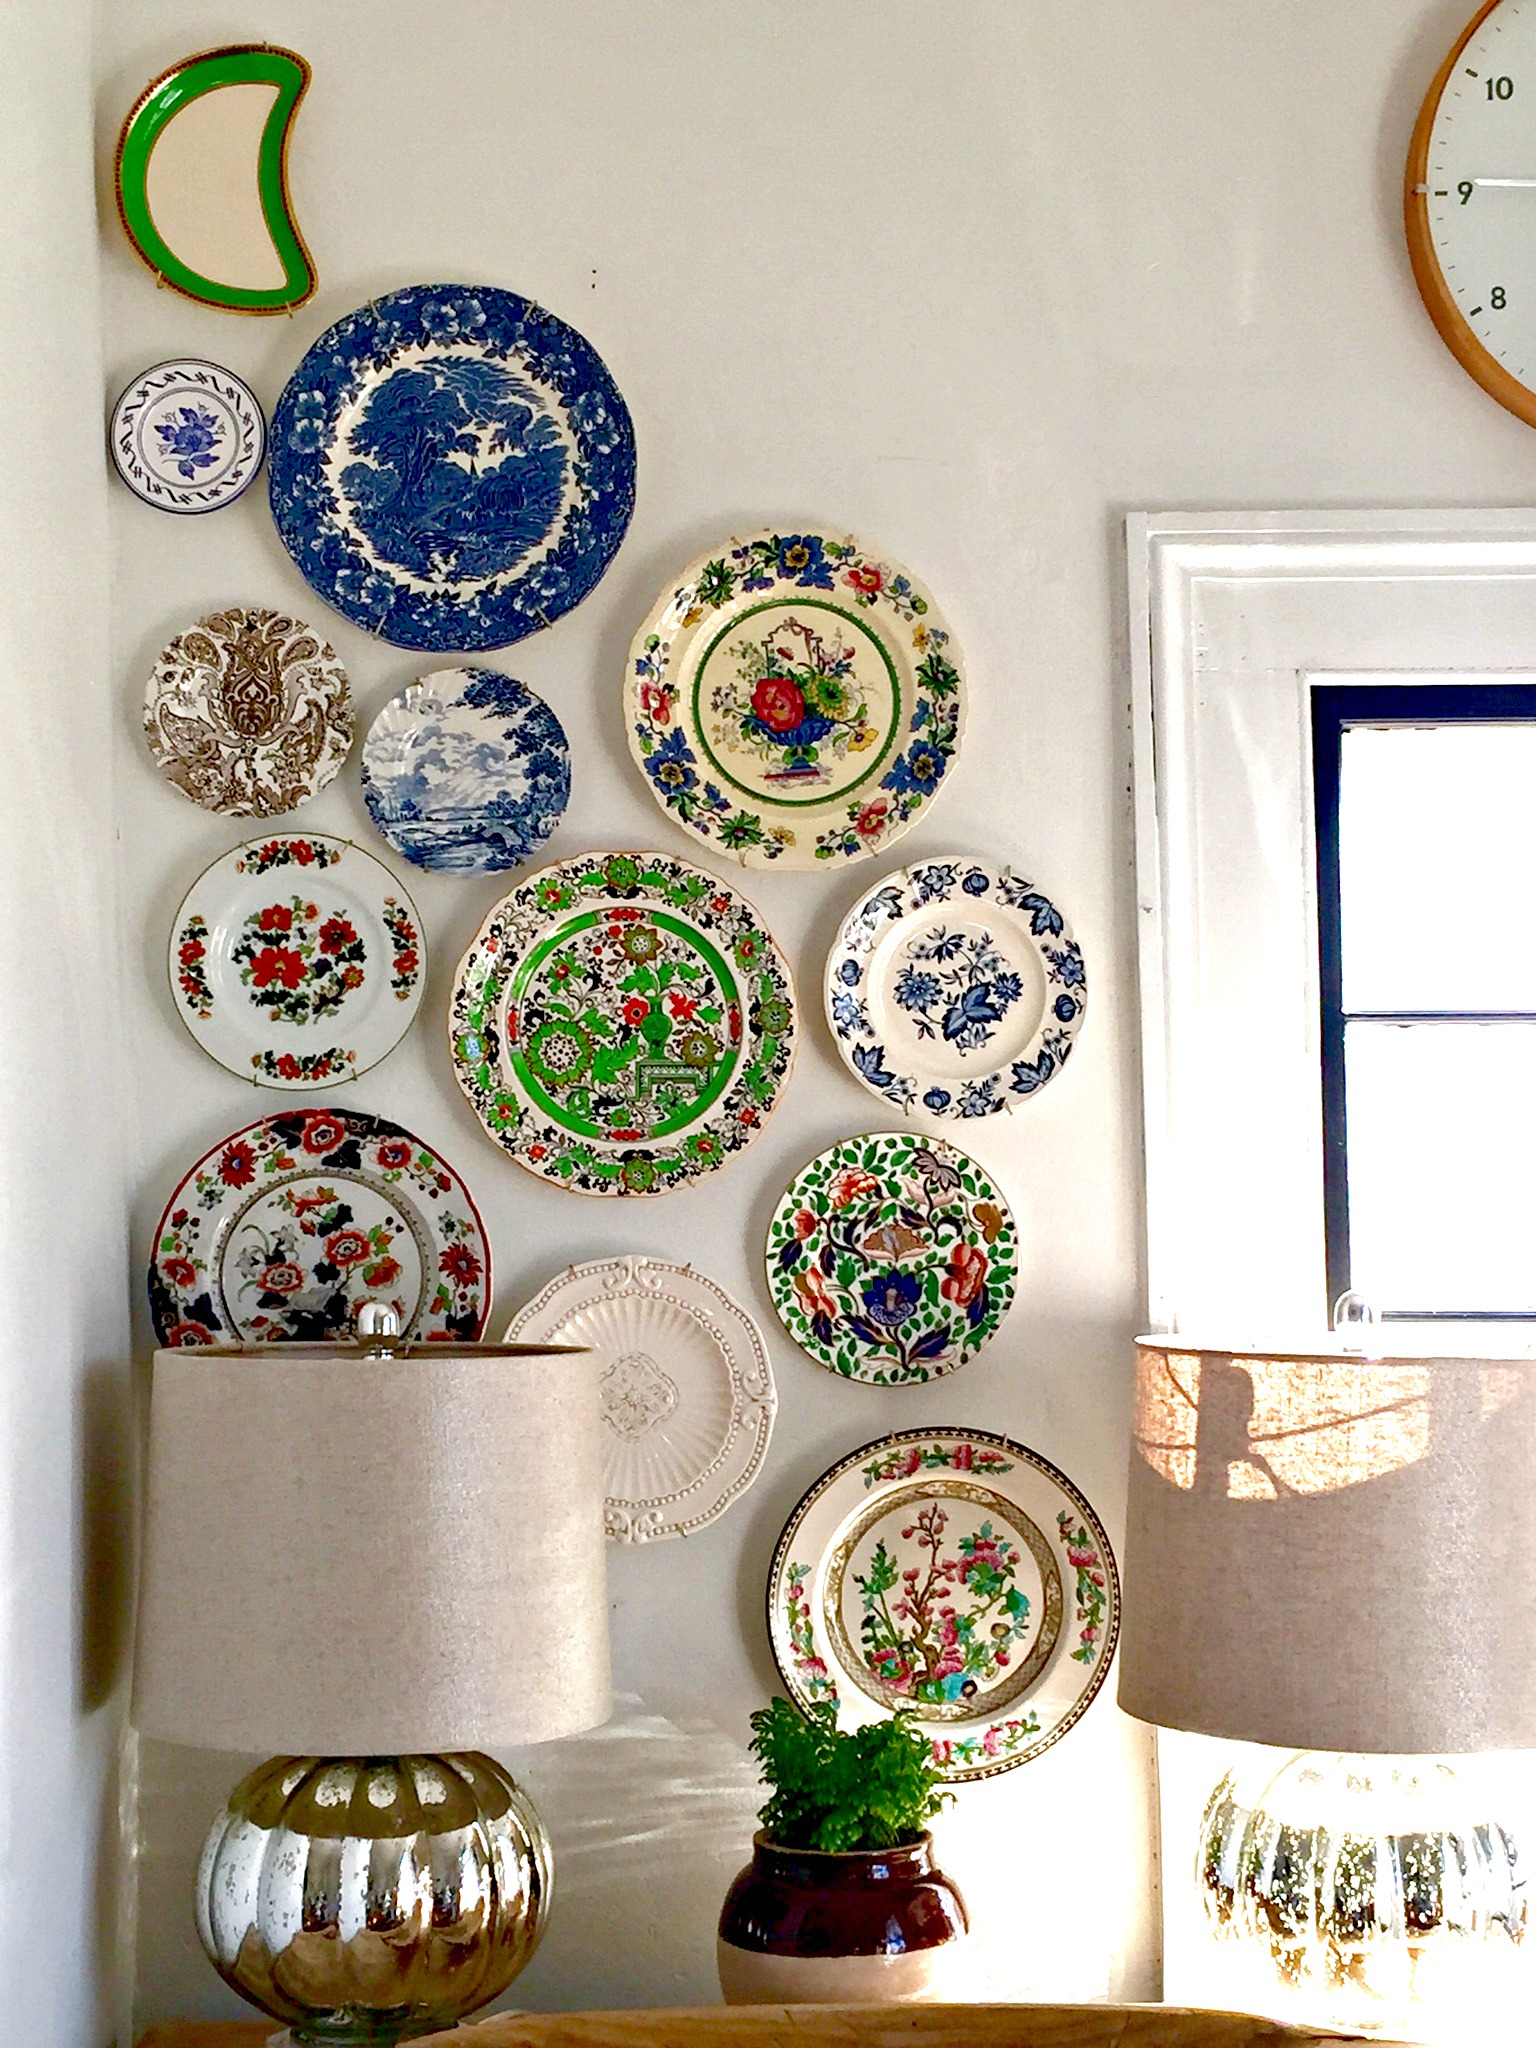 Plate art - how to hang plates